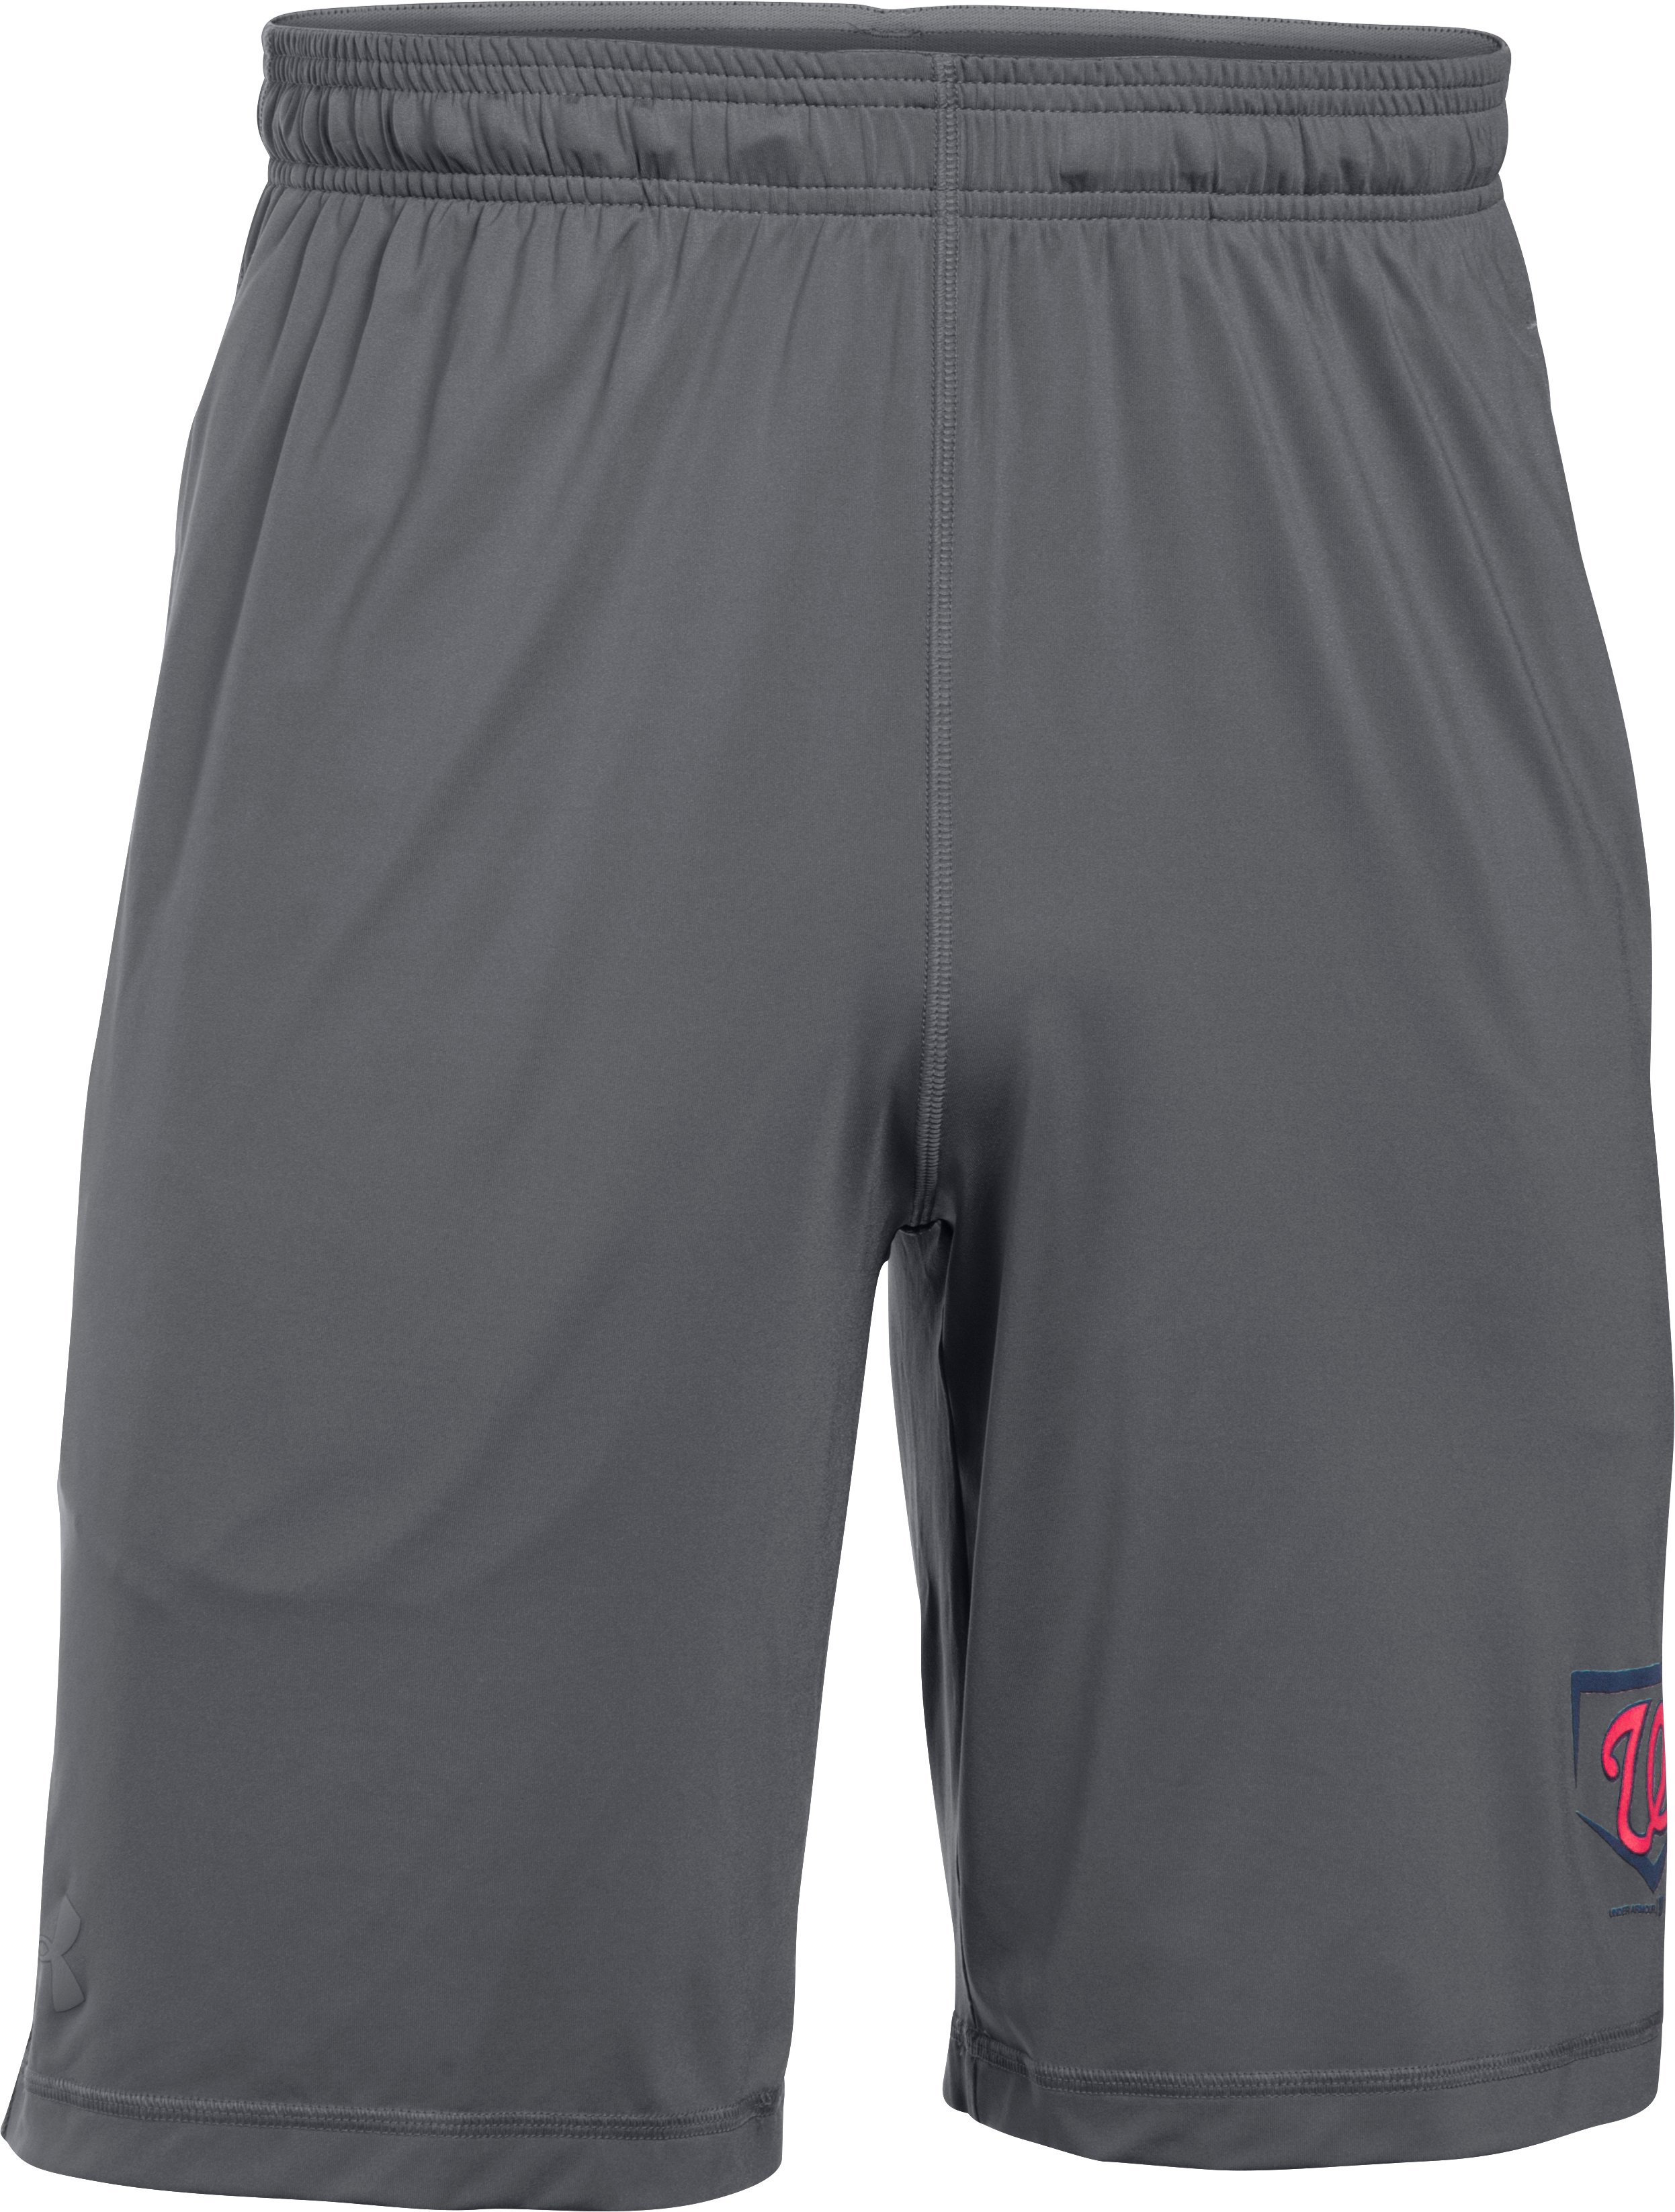 Men's Washington Nationals Raid Shorts, Graphite